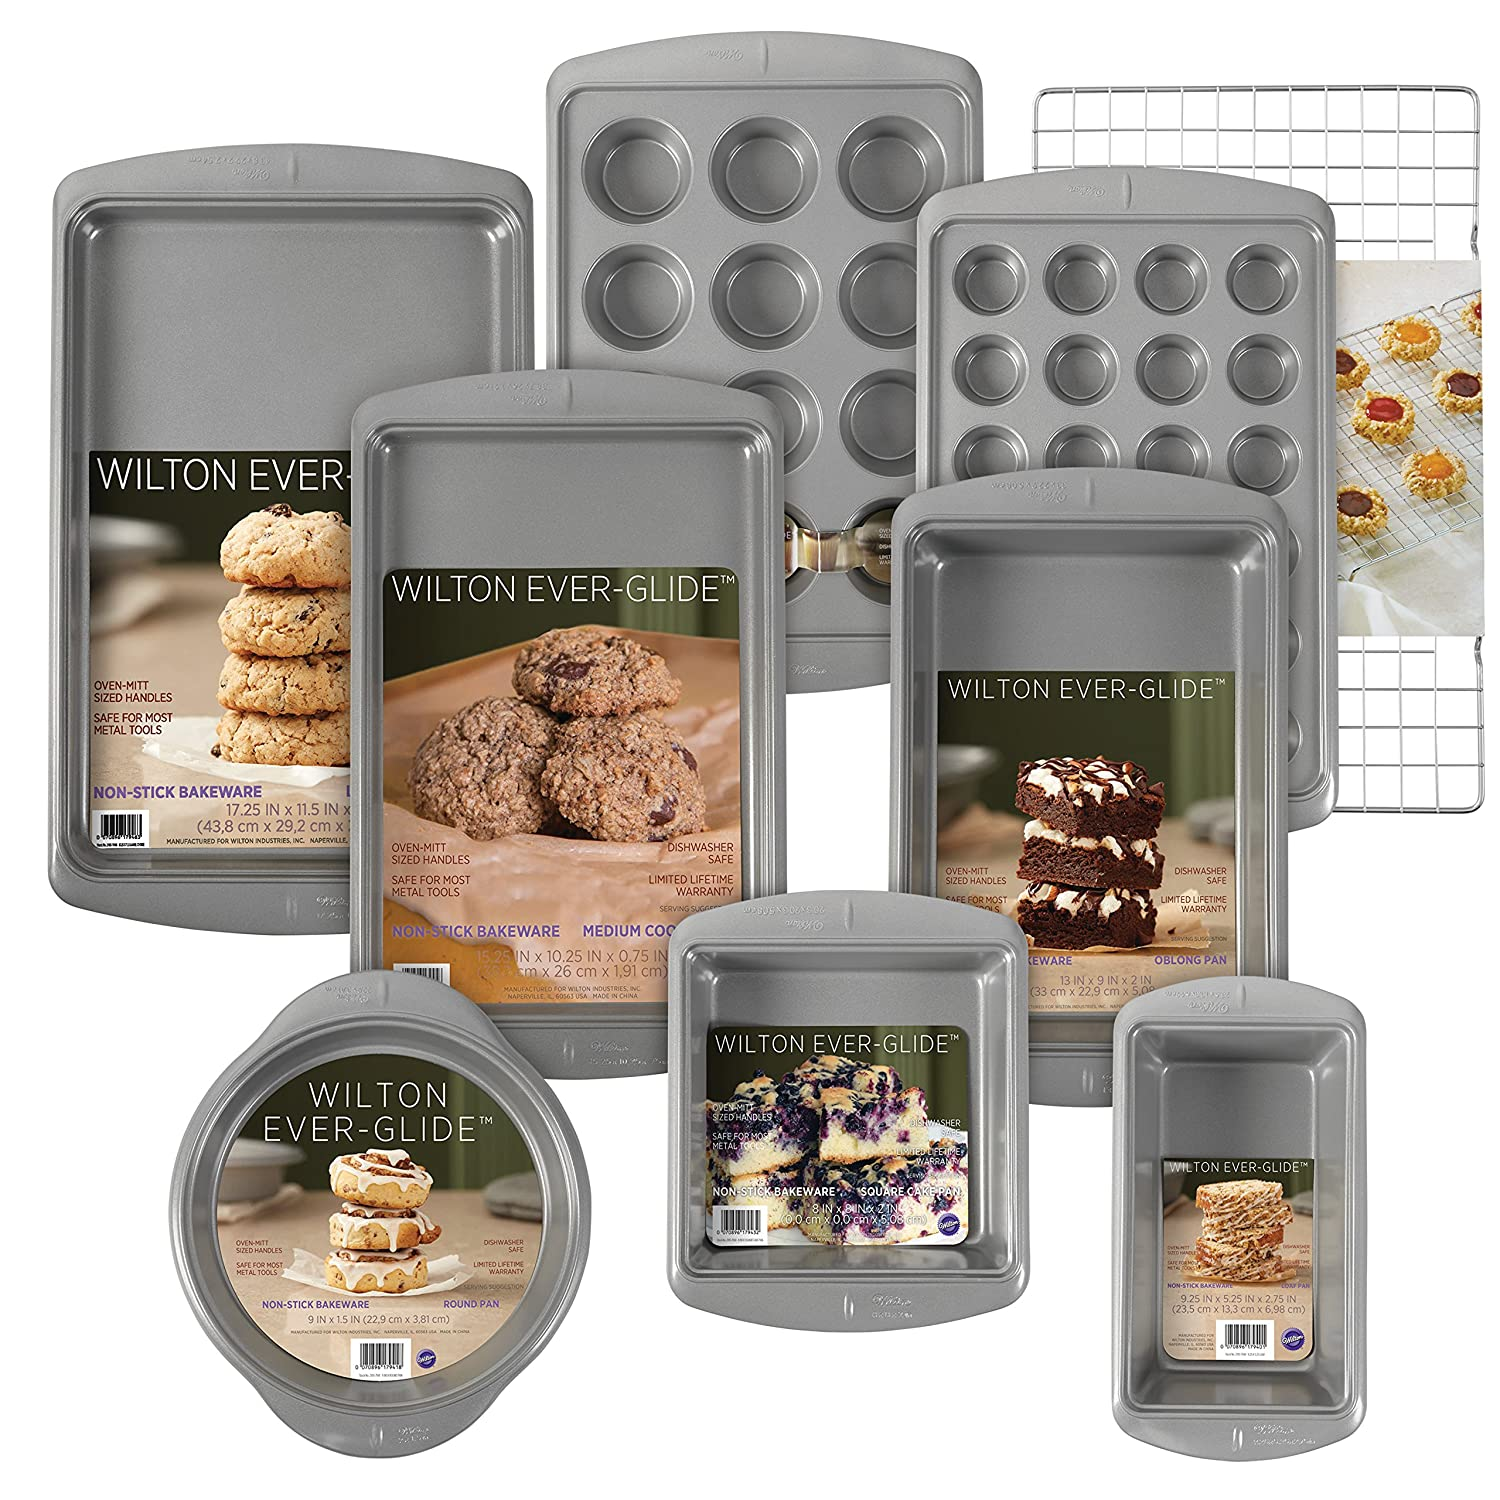 Wilton Ever-Glide Non-Stick Bakeware Set, 9-Piece - Loaf Pan, Oblong pan, 12-Cup Muffin Pan, Round and Square Cake Pans, Large Cookie Pan, Medium Cookie Pan, 24-Cup Mini Muffin Pan, Cooling Grid 9-Piece - Loaf Pan 2104-3926